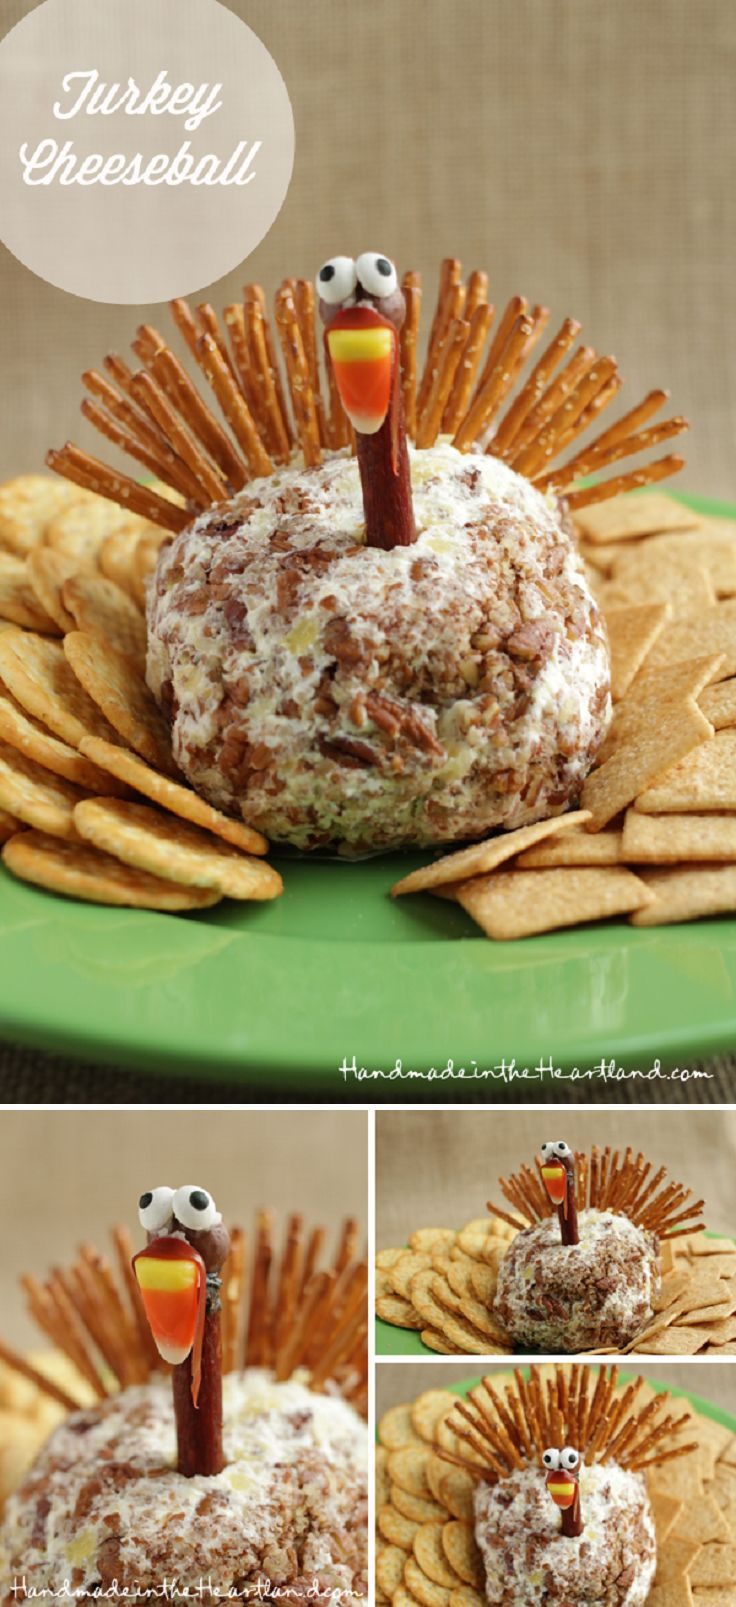 Thanksgiving Turkey Cheeseball - 16 Creative Ideas to Serve Food for Thanksgiving Day